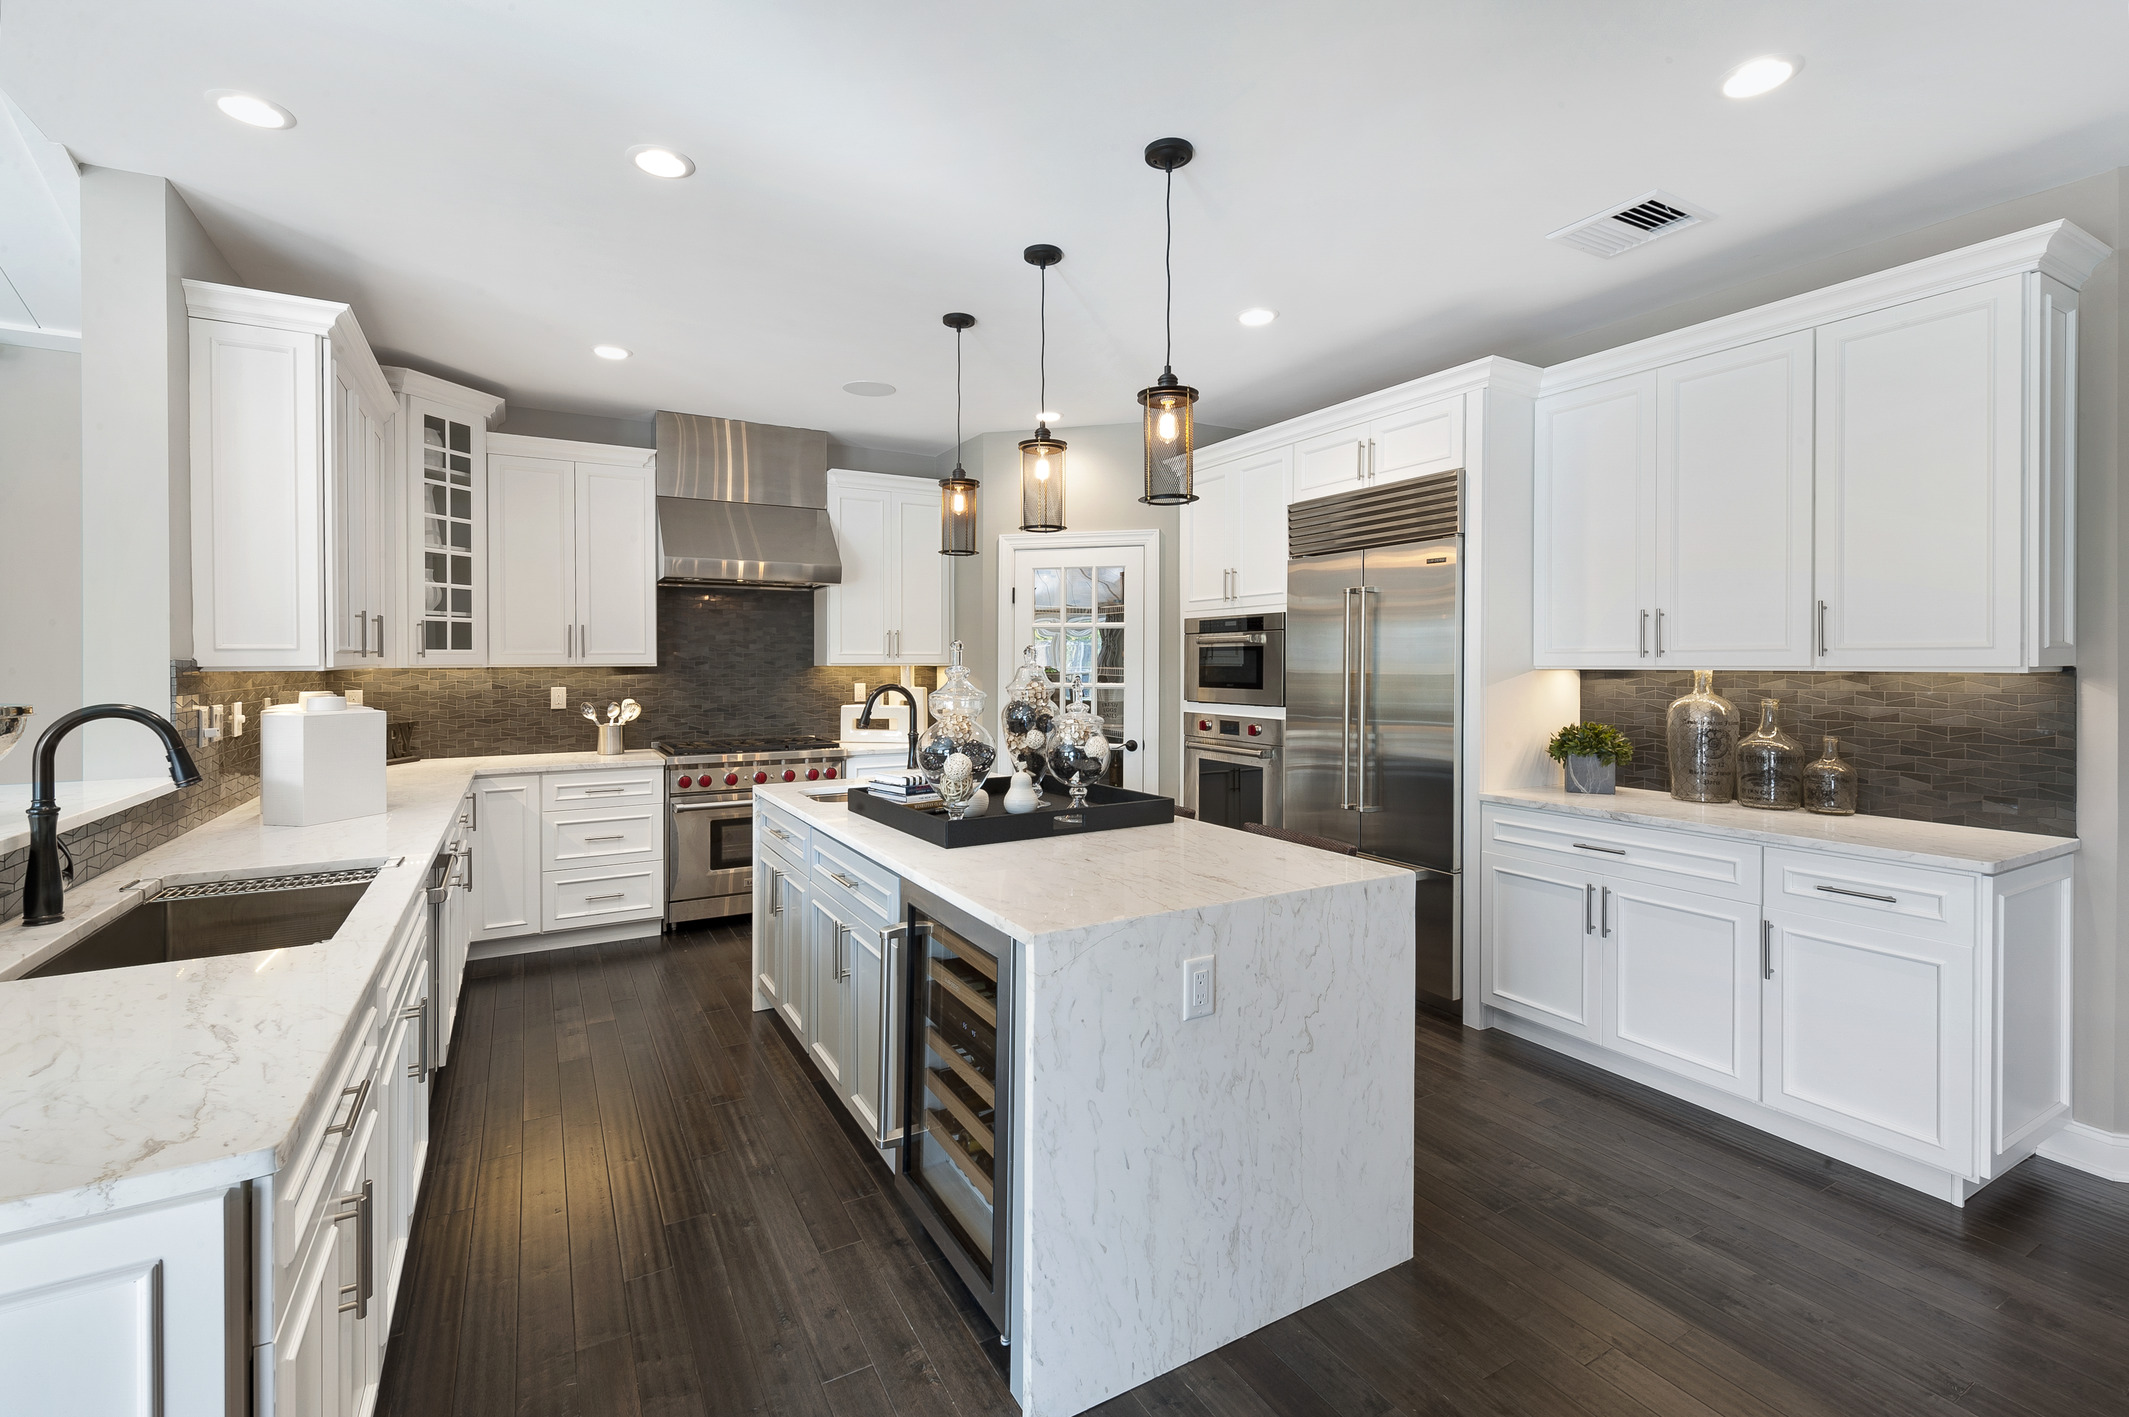 Modern kitchen with pendant fixtures.